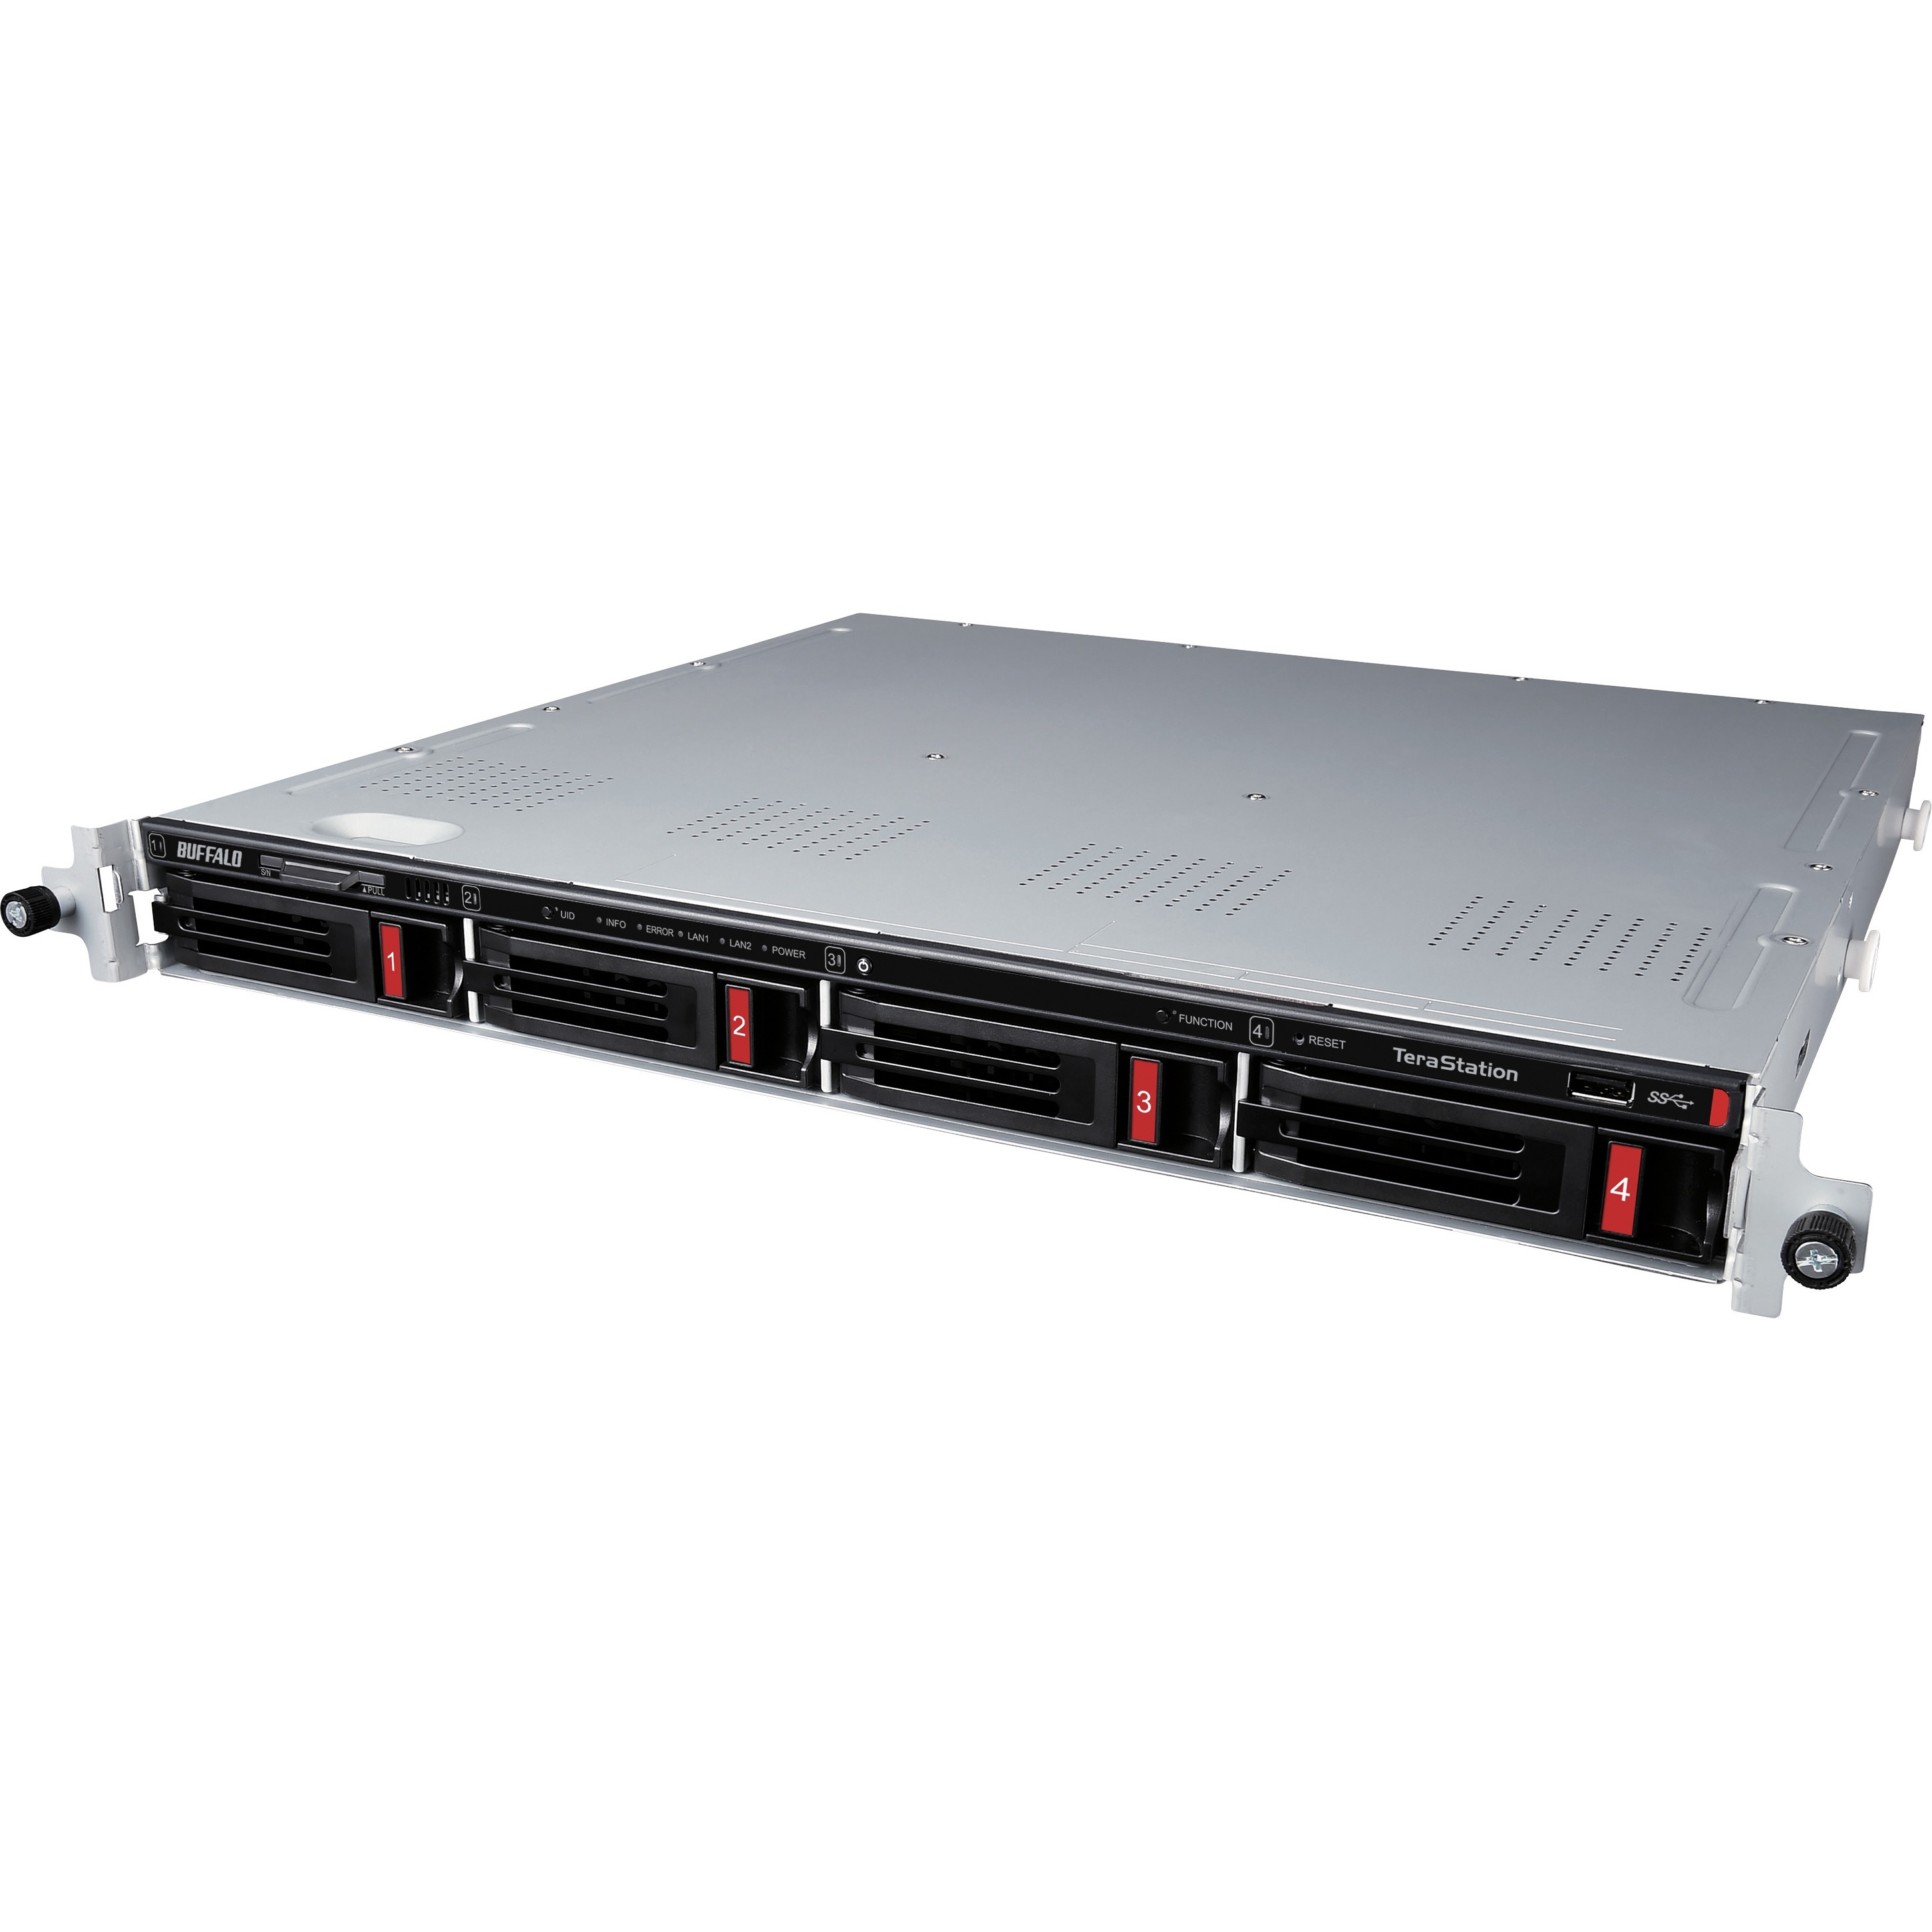 Buffalo TeraStation 3410RN 4 x Total Bays SAN/NAS Storage System - 1U - Rack-mountable